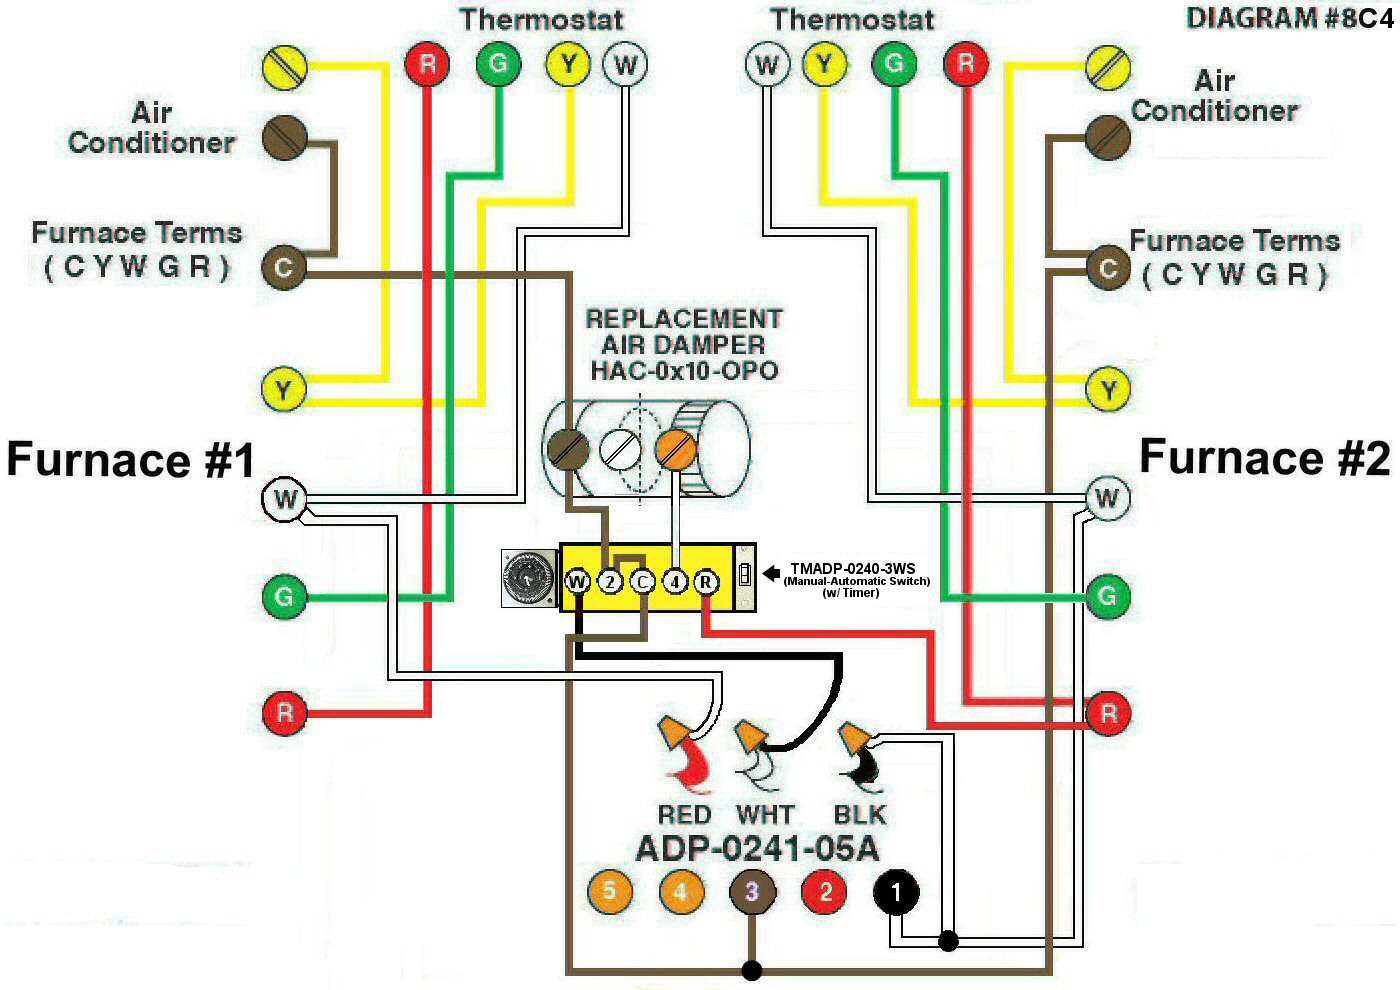 furnace wiring diagram of ups how to install inverter in 2 rooms ge blower motor 3 wire condenser